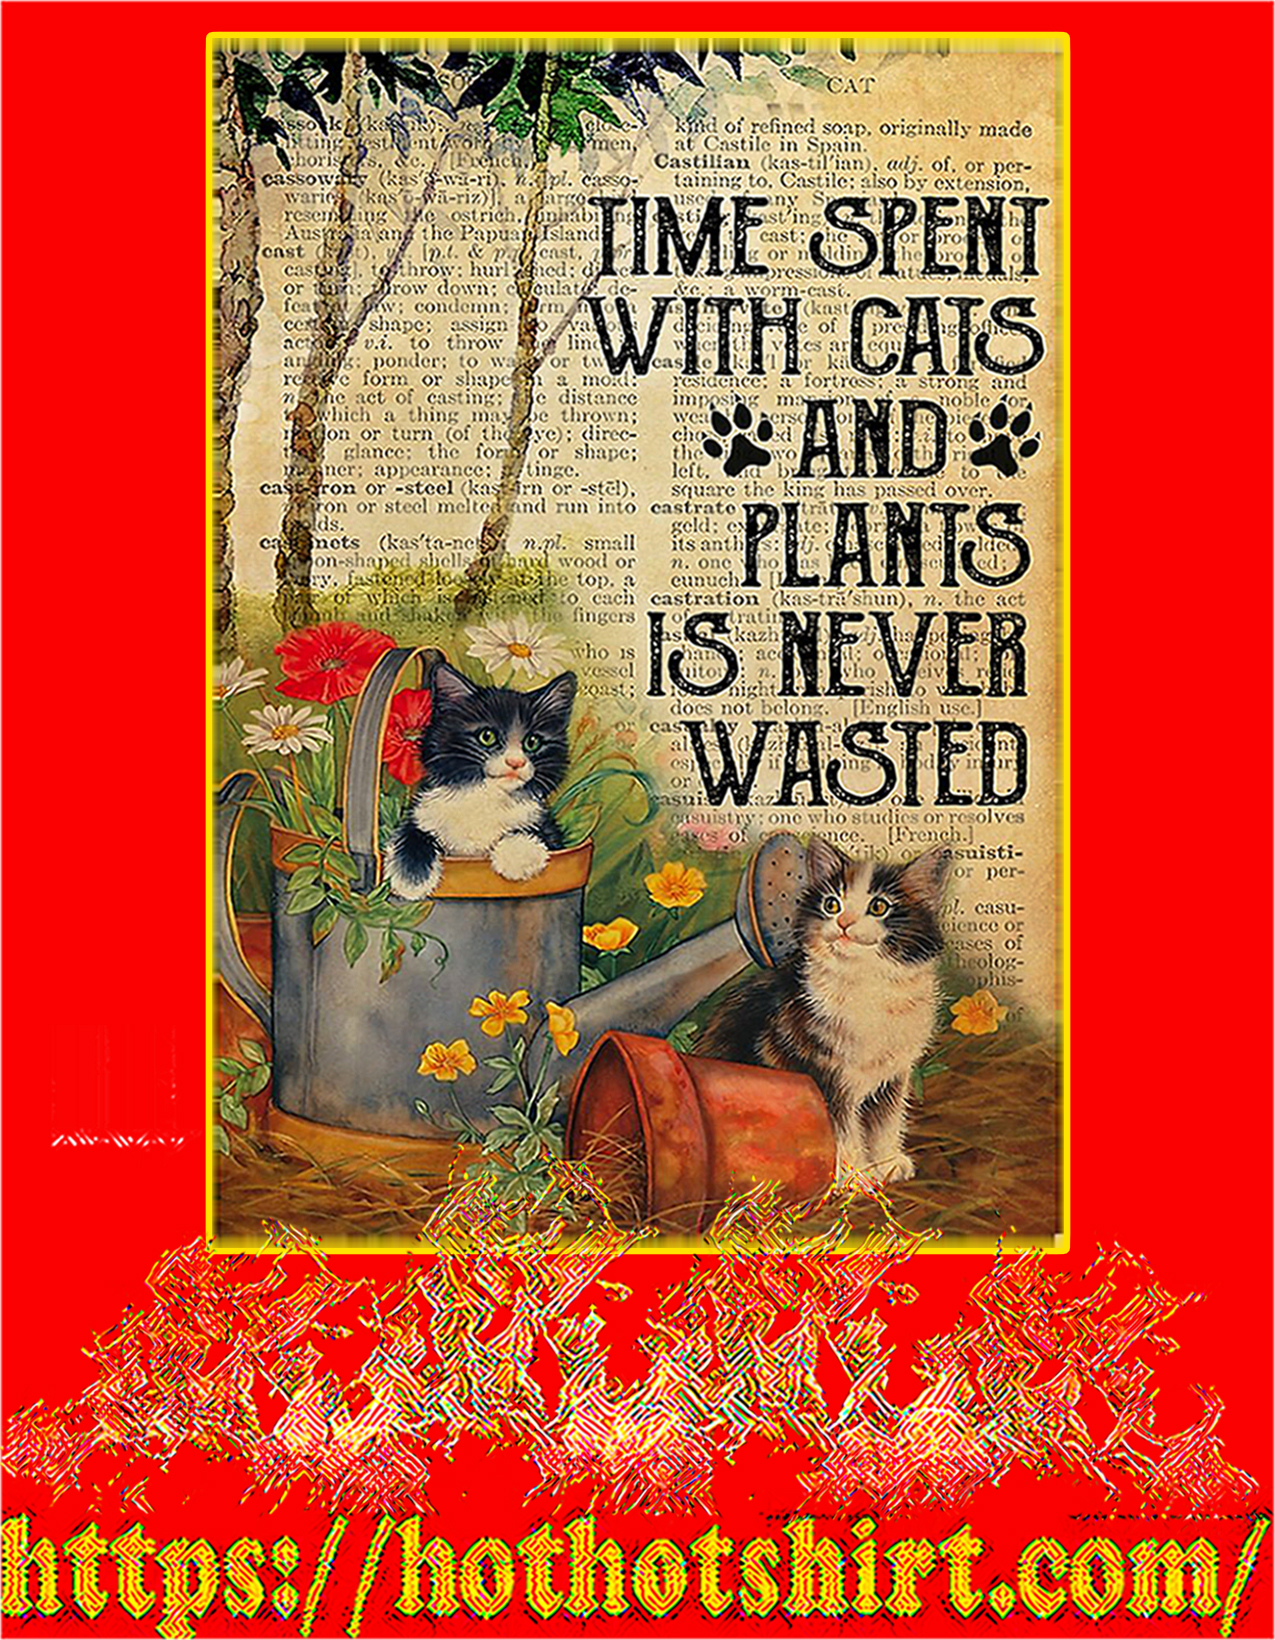 Dictionary Time spent with cats and plants is never wasted poster - A2